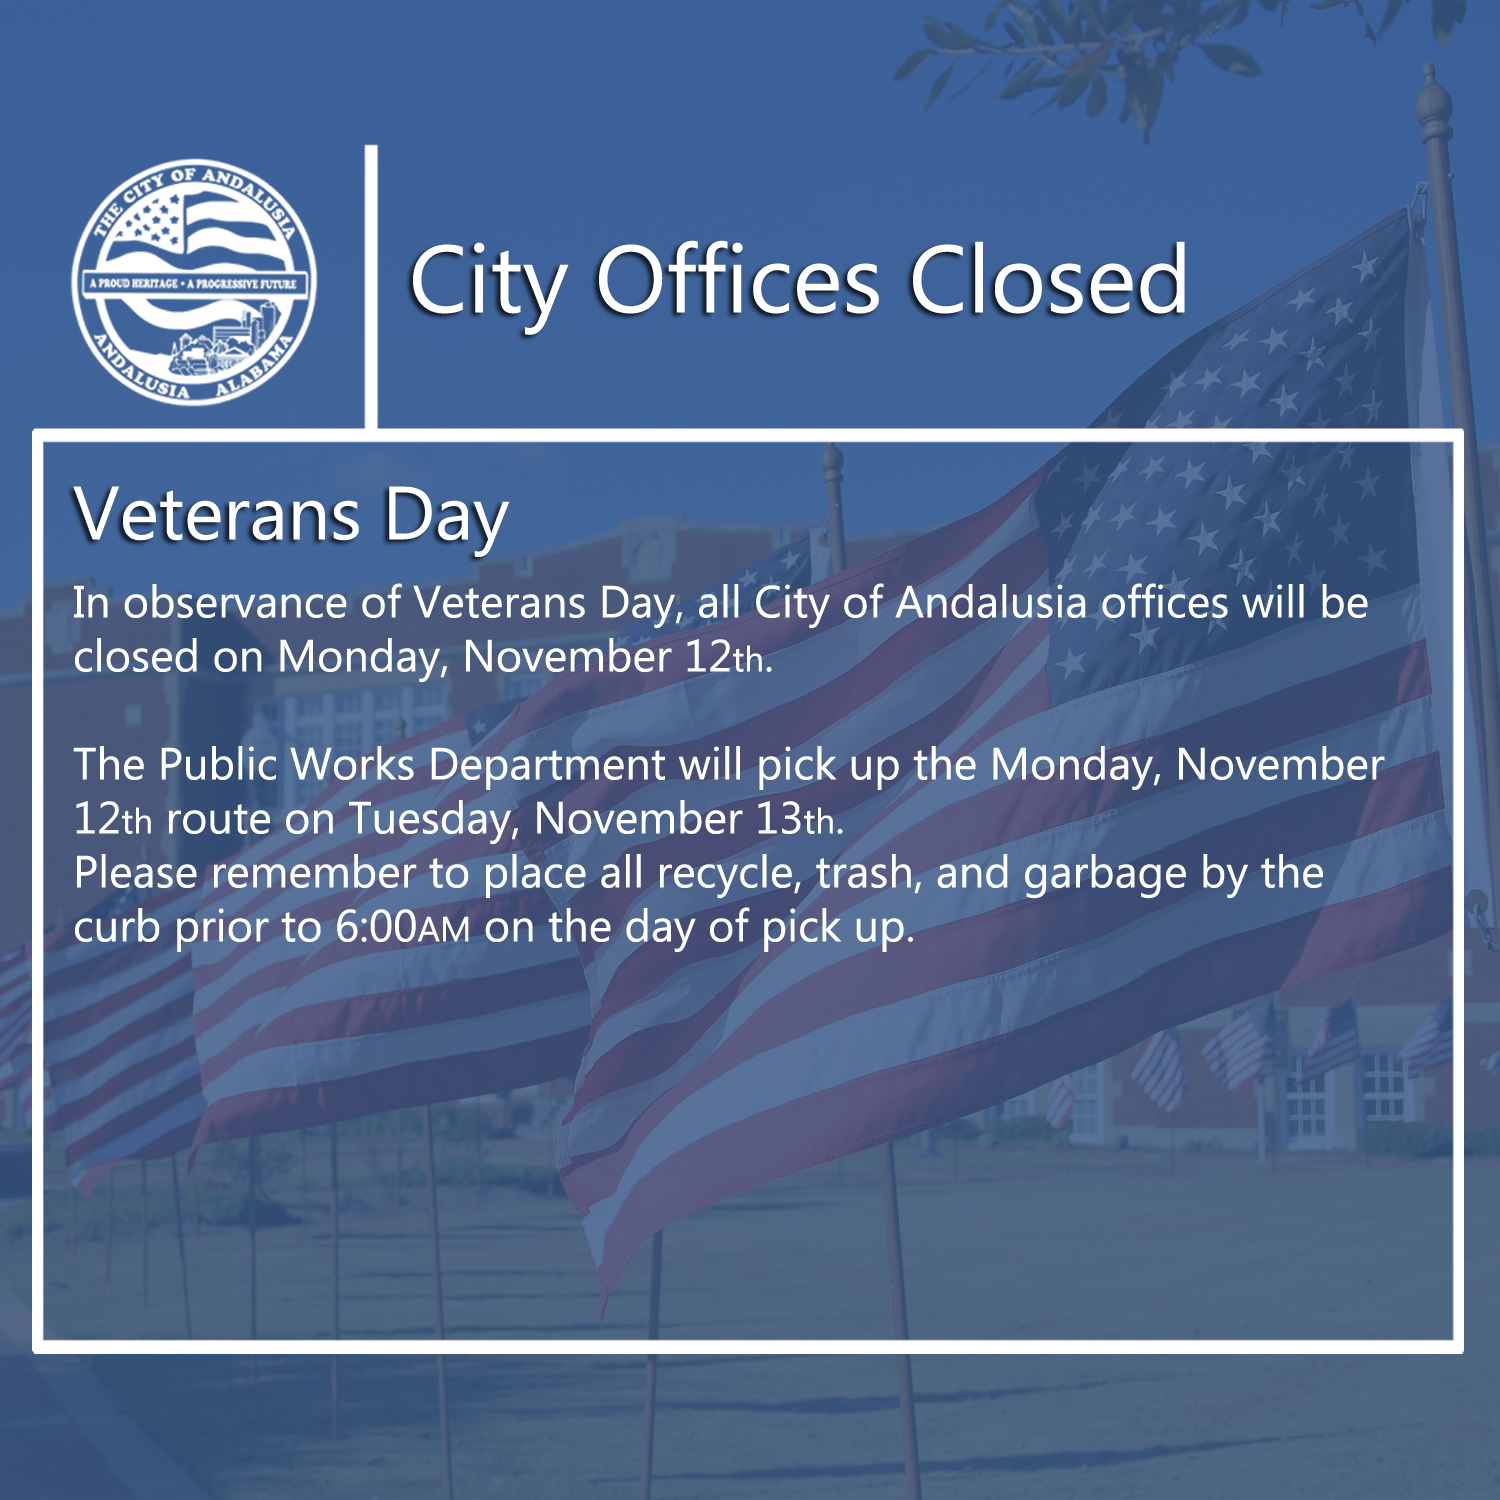 Facebook City Offices Closed Veterans Day